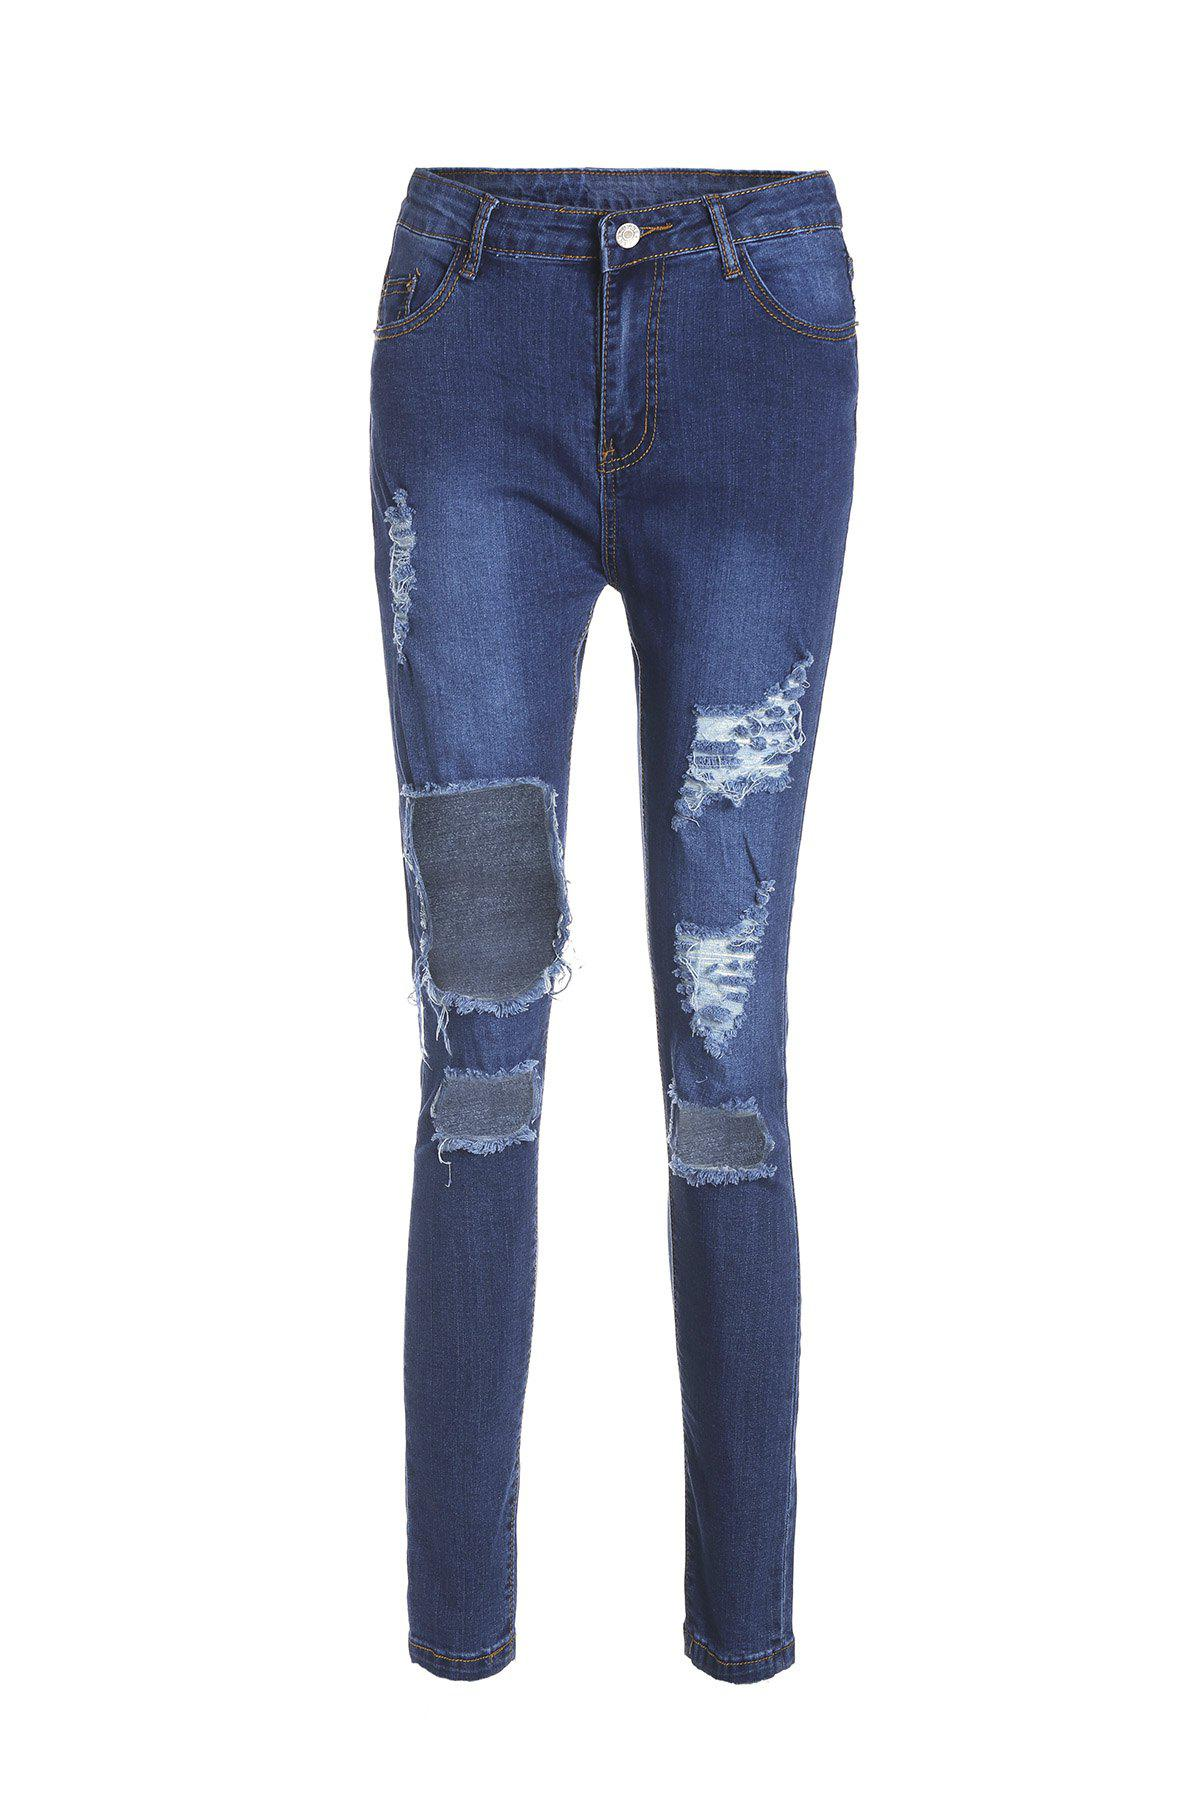 Chic High-Waisted Bodycon Hole Design Femmes Jeans - [